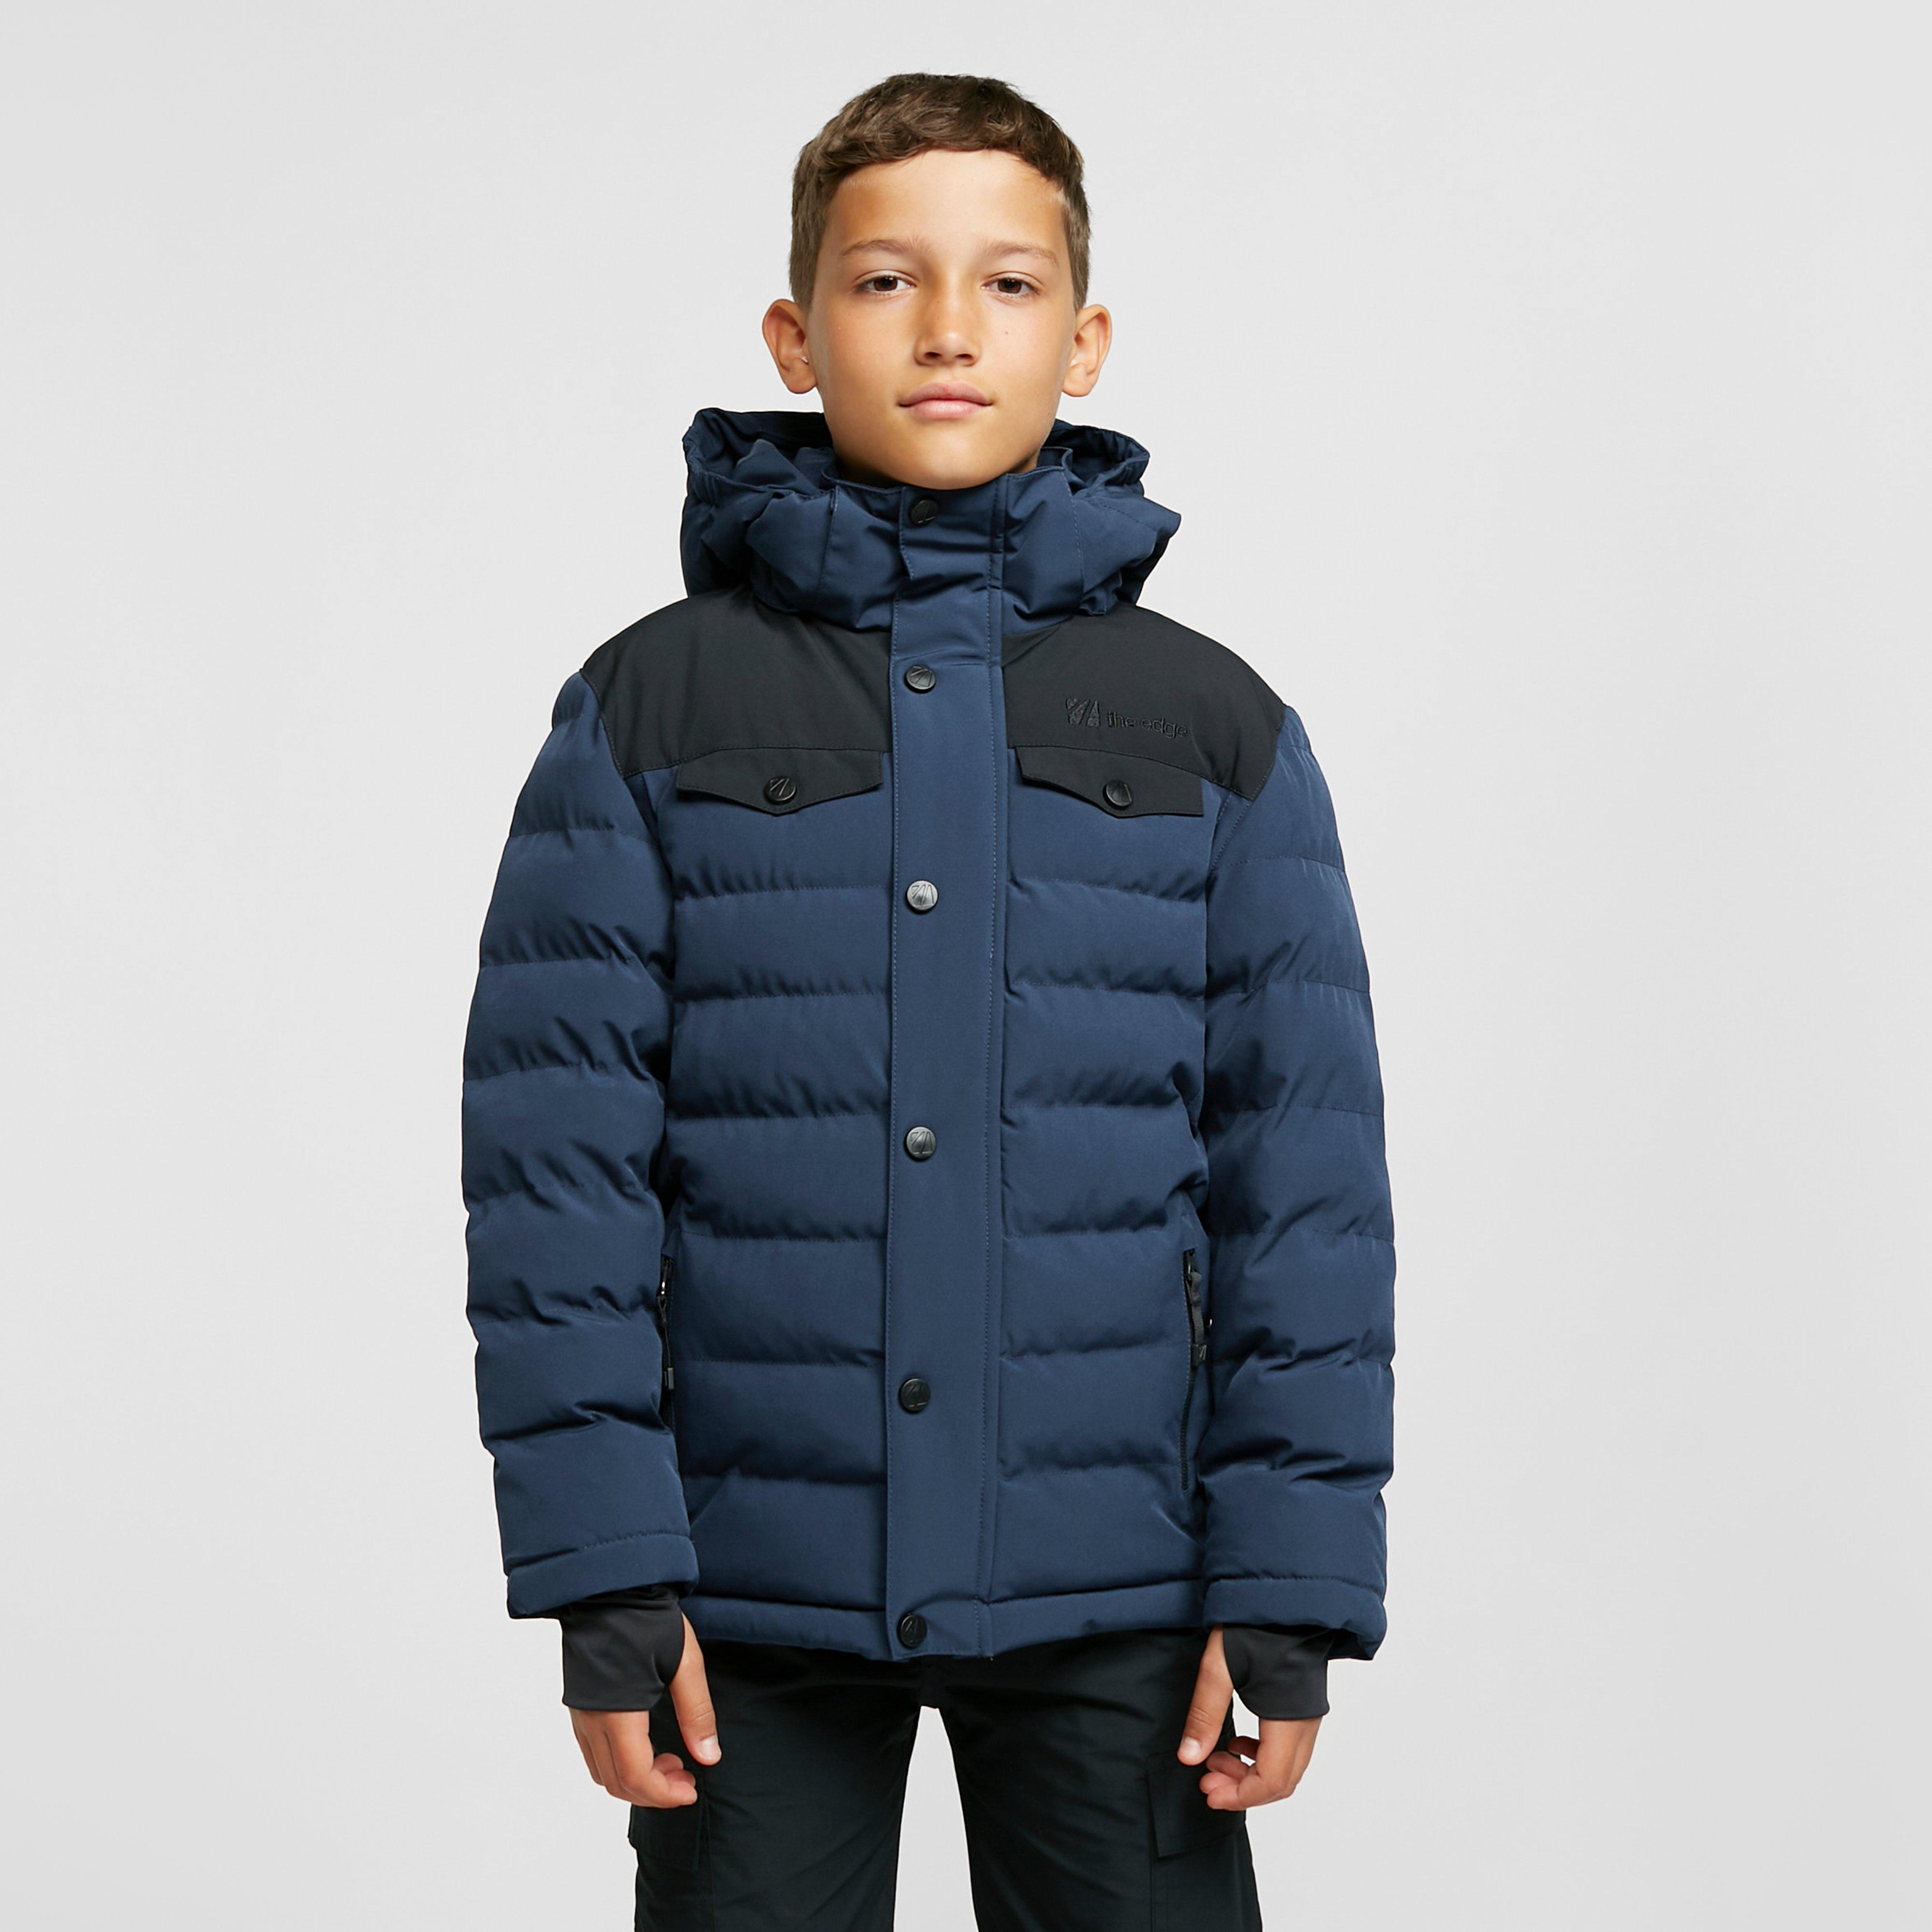 The Edge Kids Banff Insulated Jacket (ages 13-16) - Blue/navy  Blue/navy